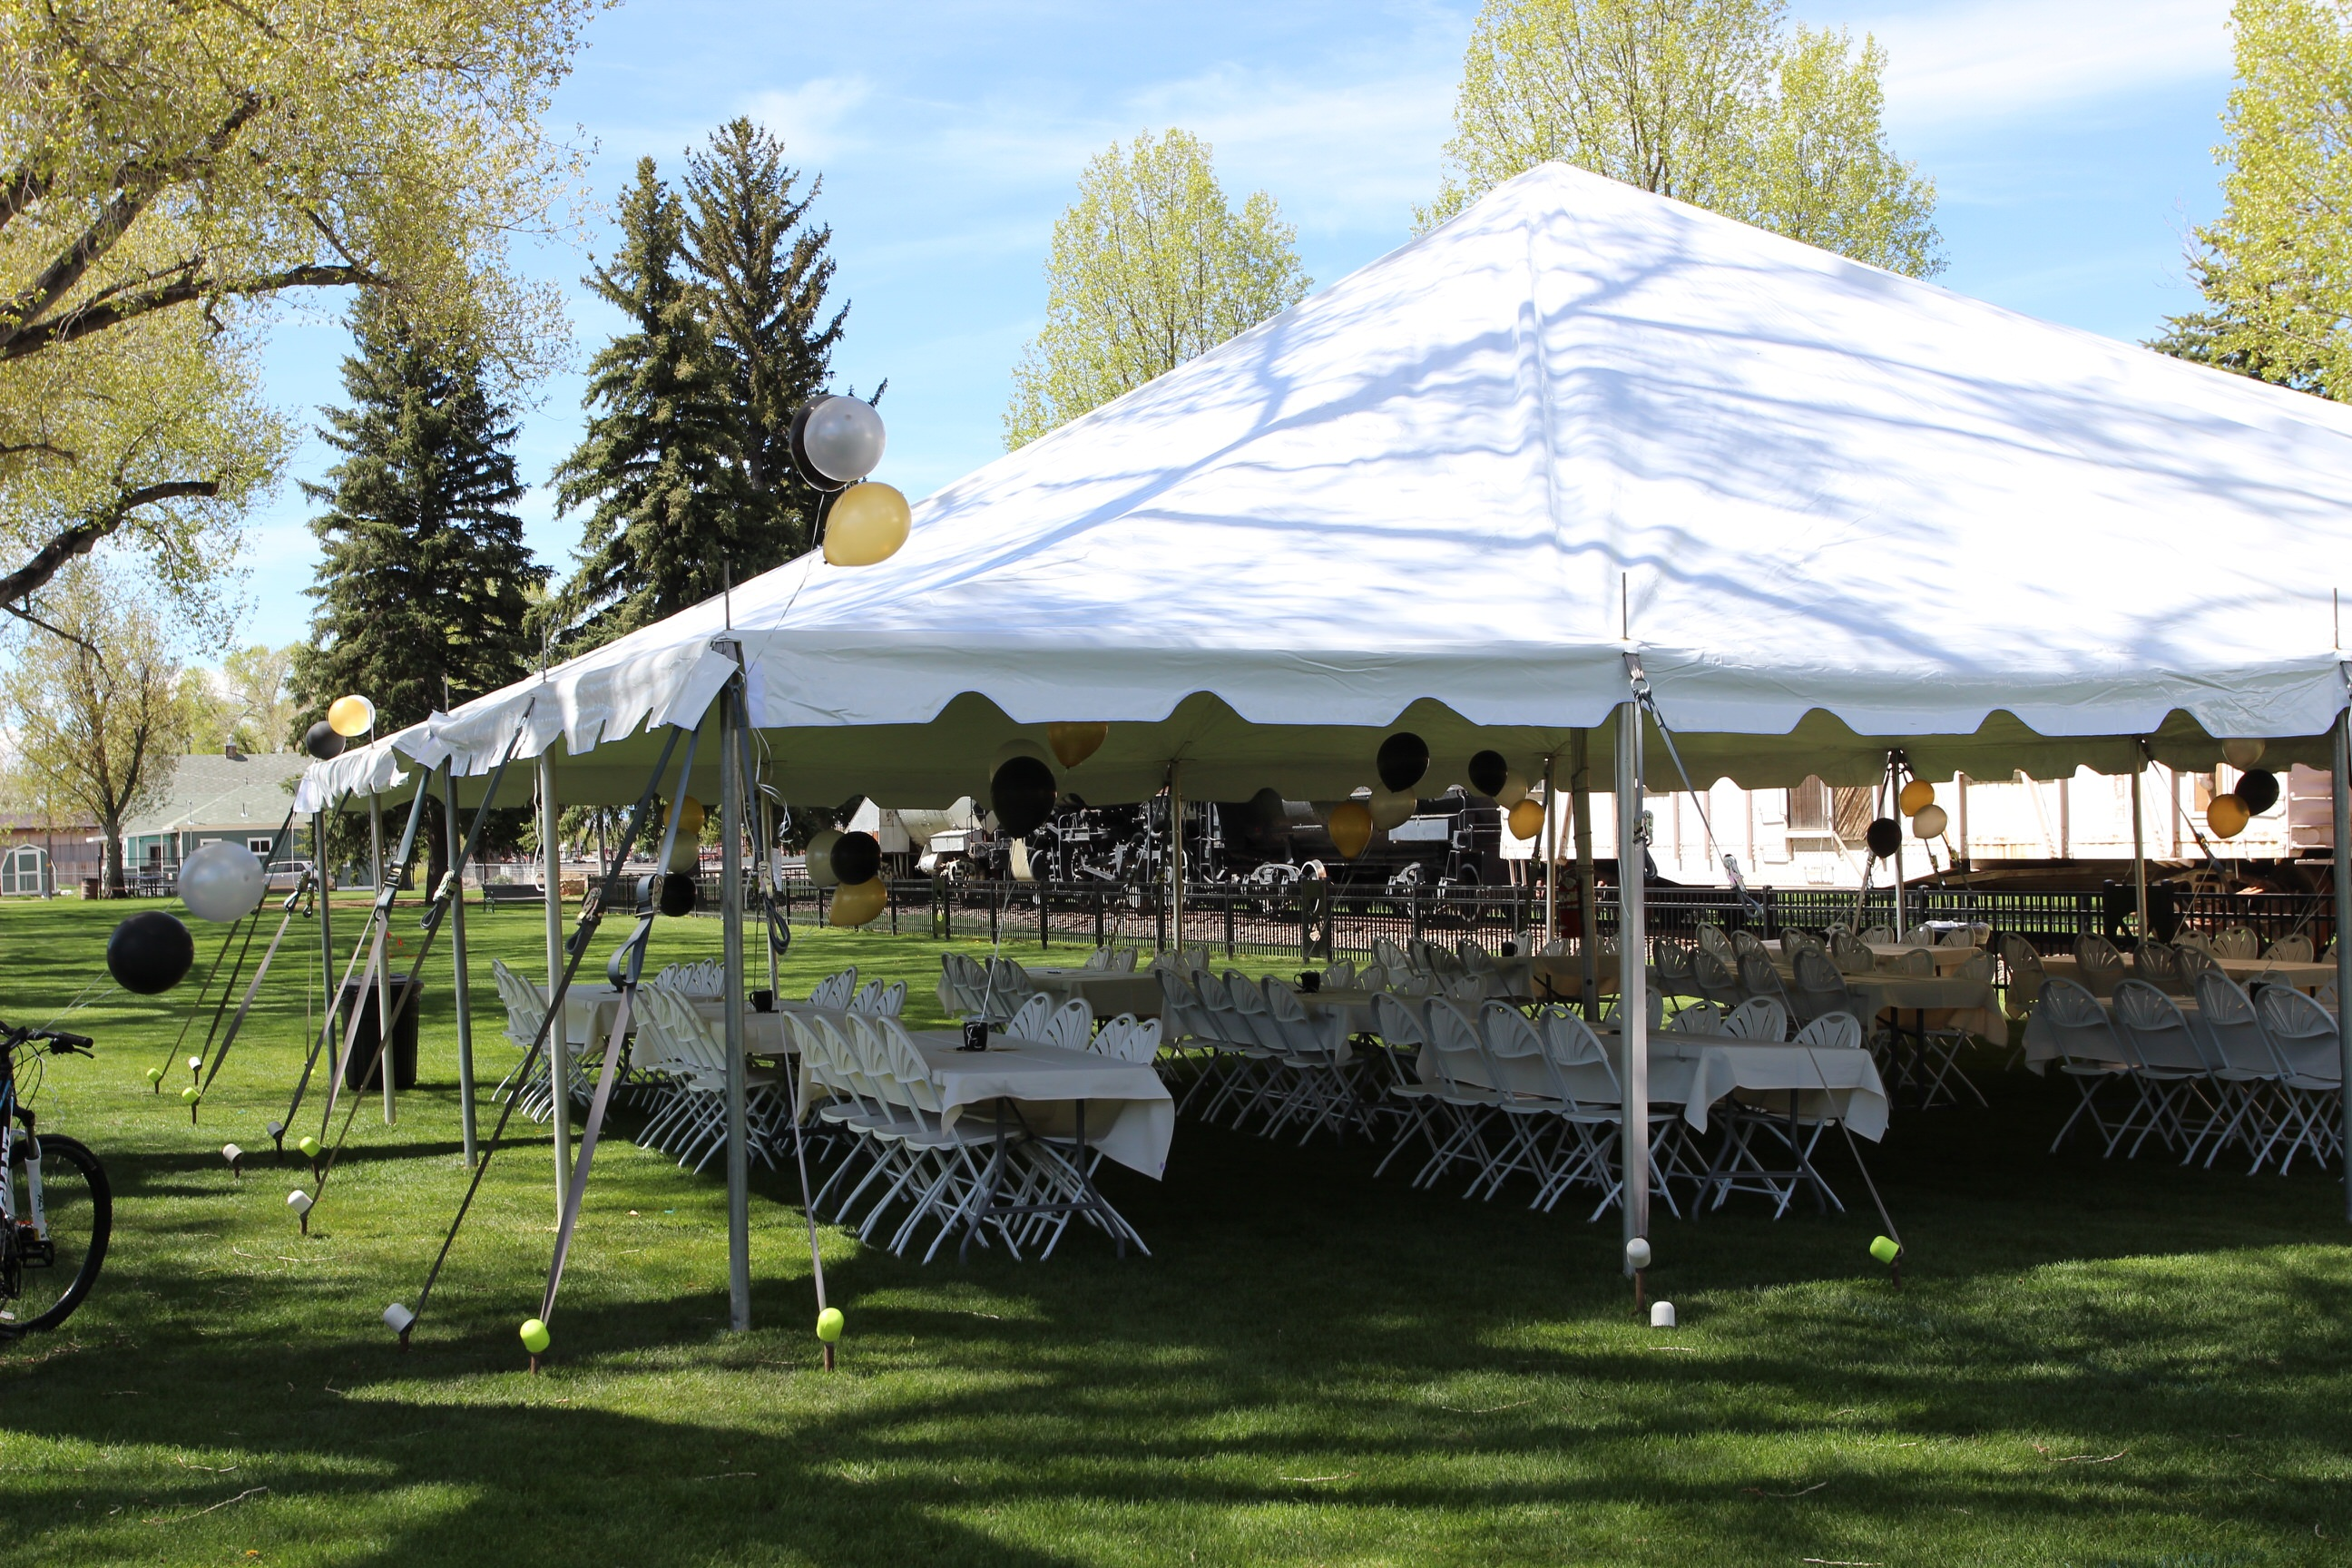 One part of planning a successful outdoor event is managing deadlines. And not just deadlines for save-the-dates invitations showers RSVPs meetings ... & When Should You Reserve Your Tent? | Wyoming Tent u0026 Event Supply